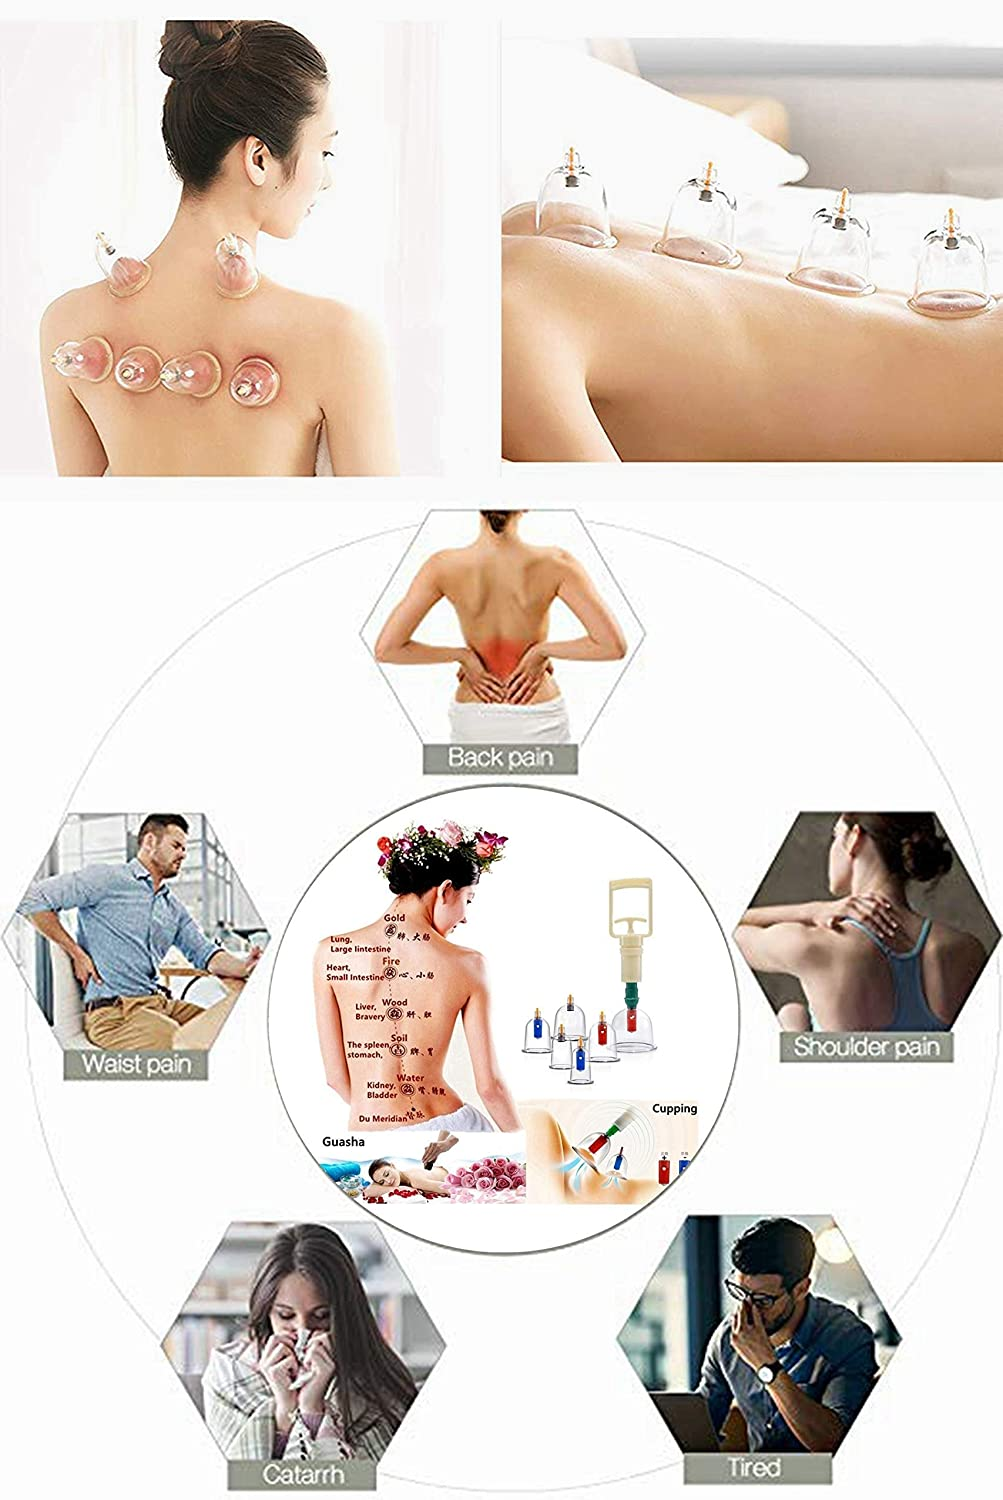 Med SPA Care Handheld Vacuum Cupping Set/Head Massager/Full Body Massager/Best Fat Burnersr- Chinese Ancient Acupuncture Therapy for Back Pain, Lose Belly Fat Fast, Value Gifts (Luxury 24-Cups Set): Sports & Outdoors